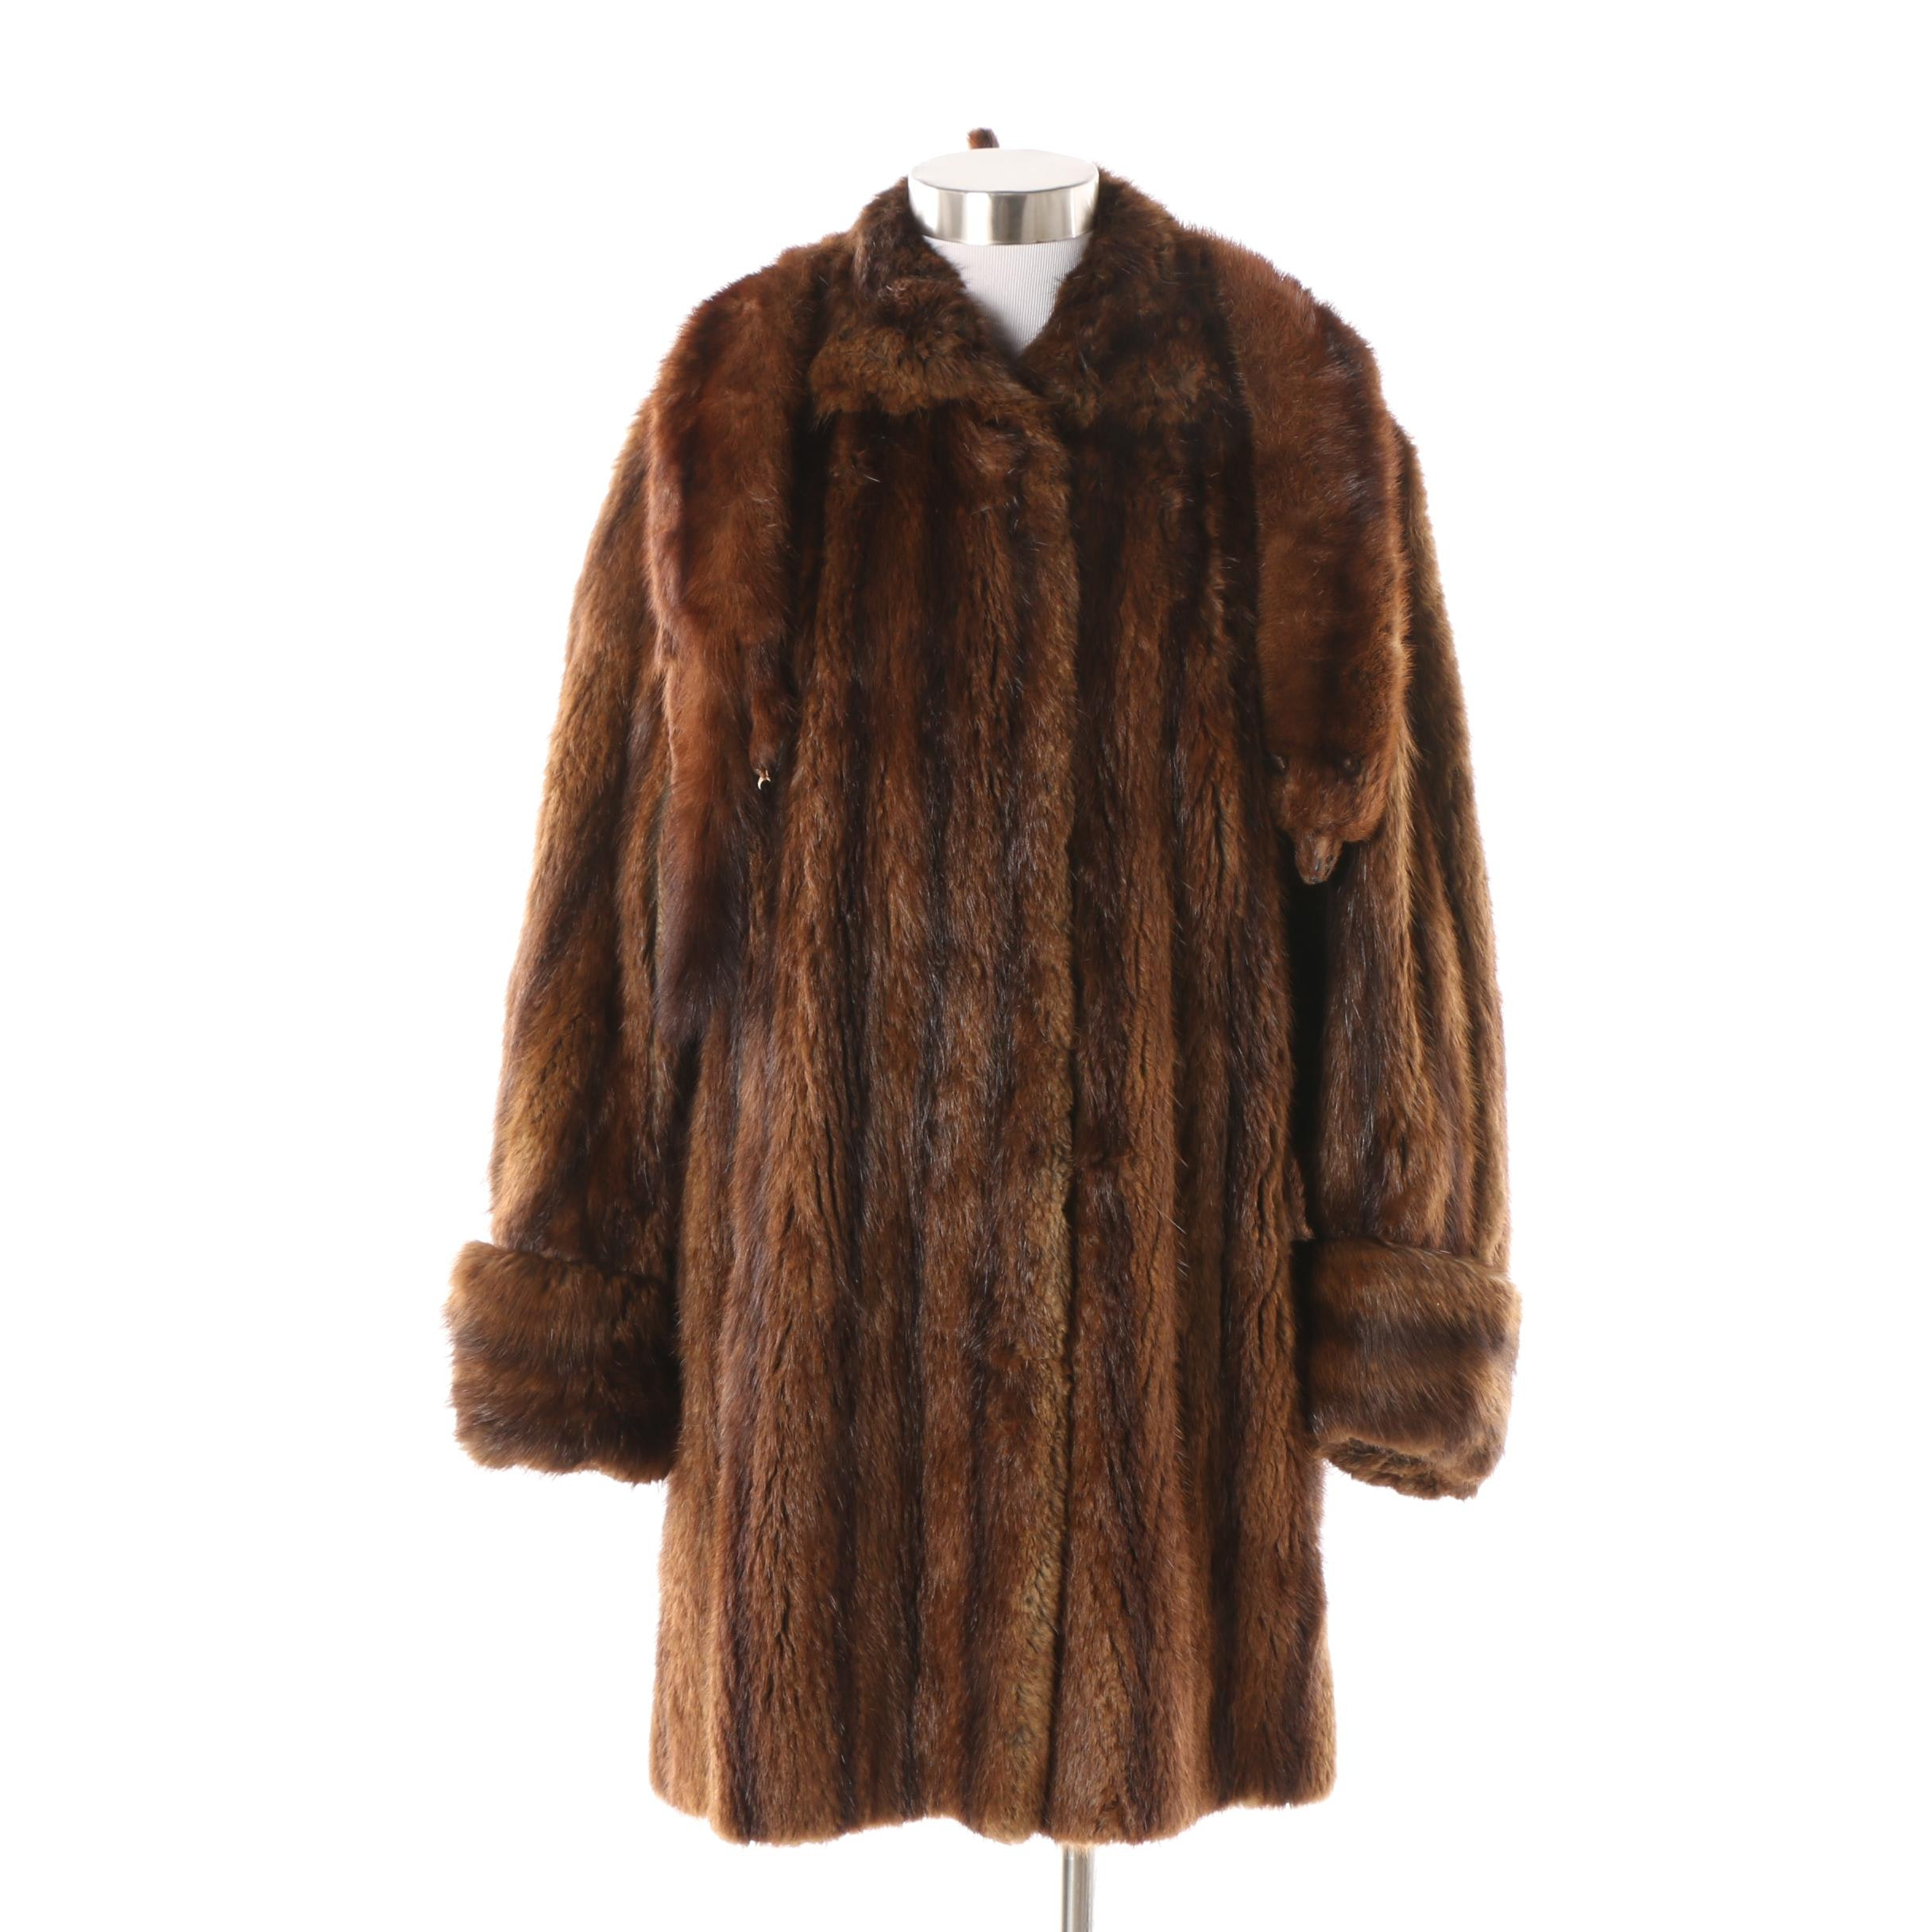 Vintage R.M. Taylor & Co. Furs Muskrat Fur Coat with Mink Fur Stole